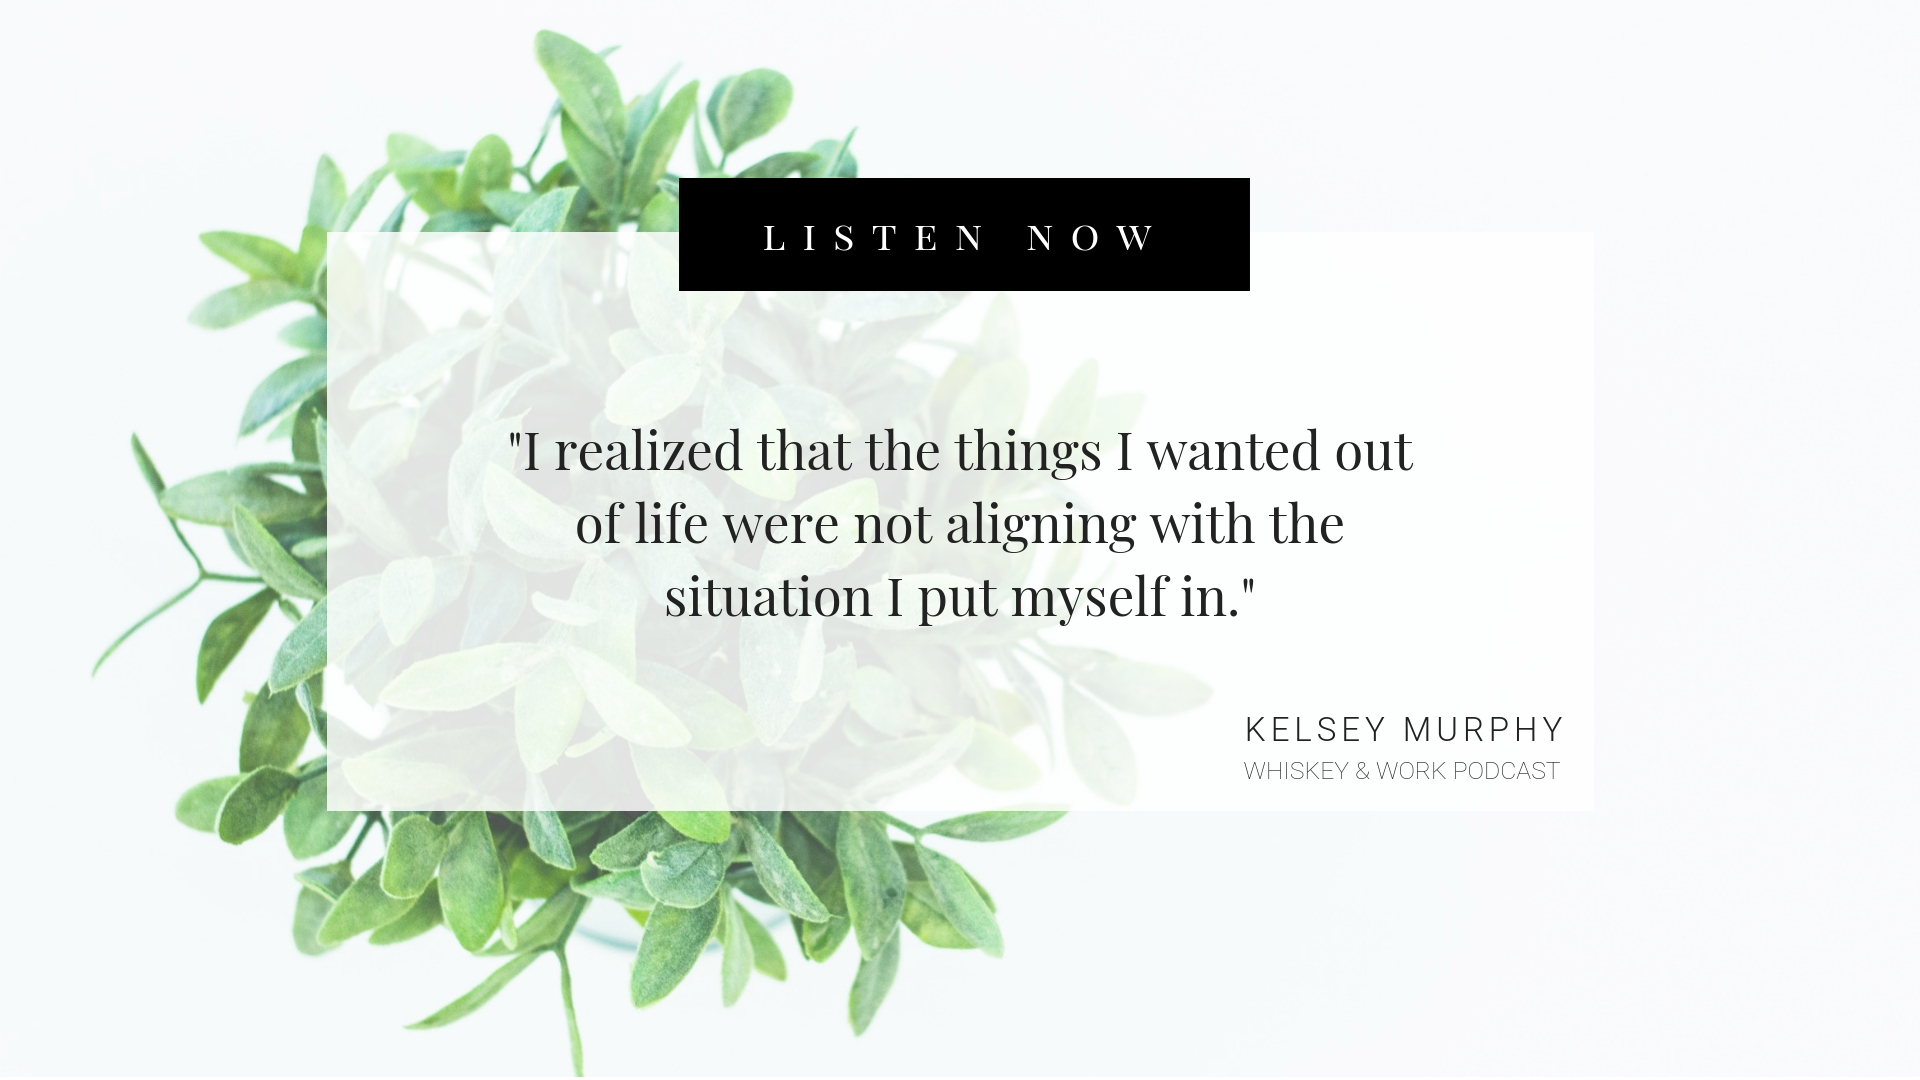 Entering A New Season Whiskey and Work Podcast with Kelsey Murphy